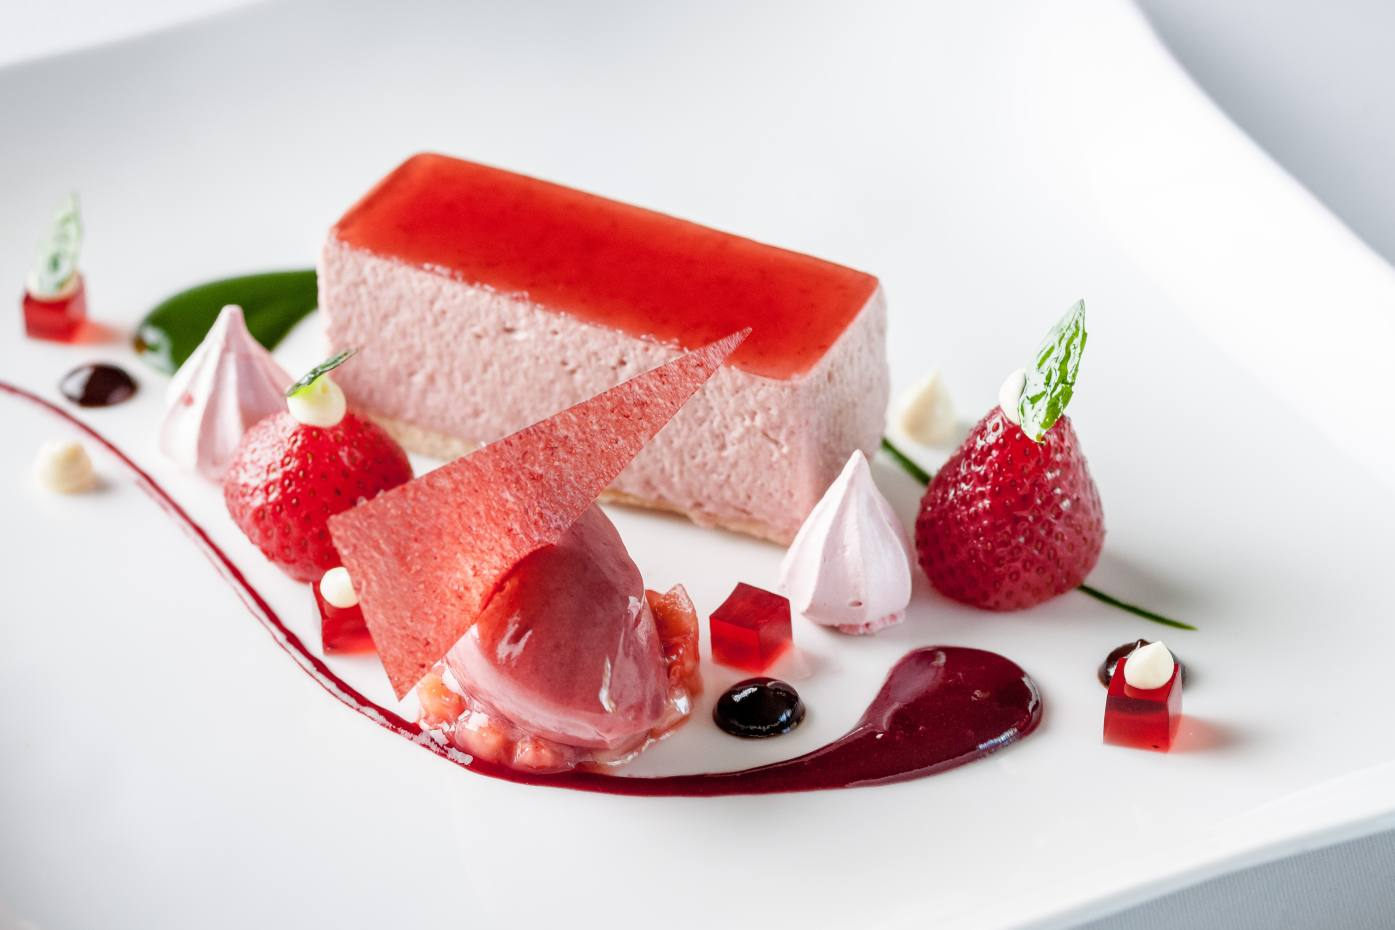 Strawberry mousse, sweet basil purée, strawberry jelly and strawberry sorbet